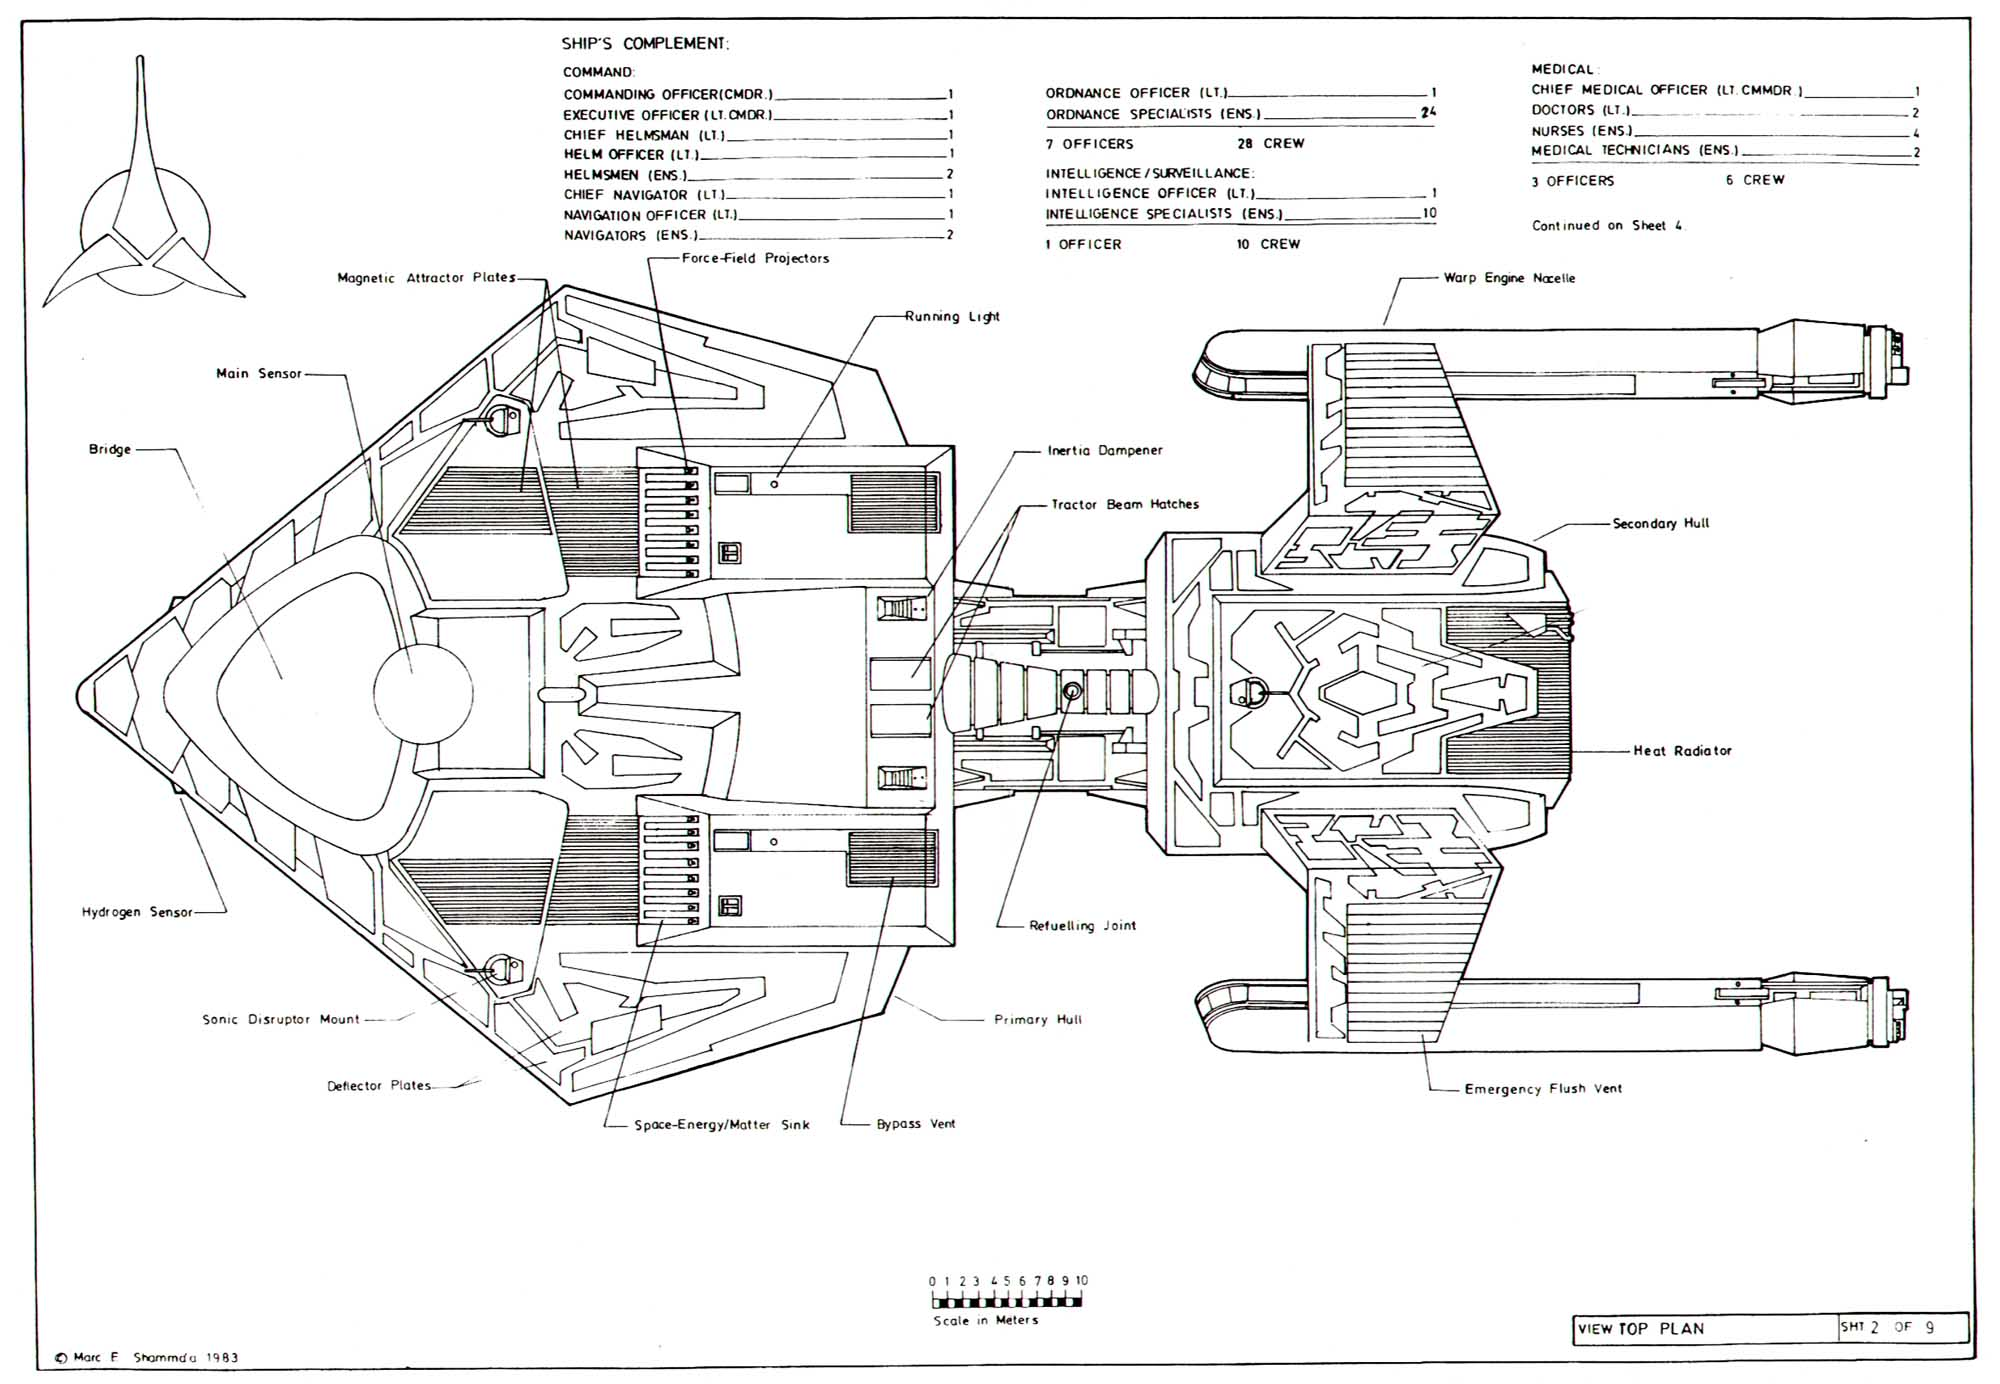 Star Trek Blueprints Klingon Destroyer K T Orr Class